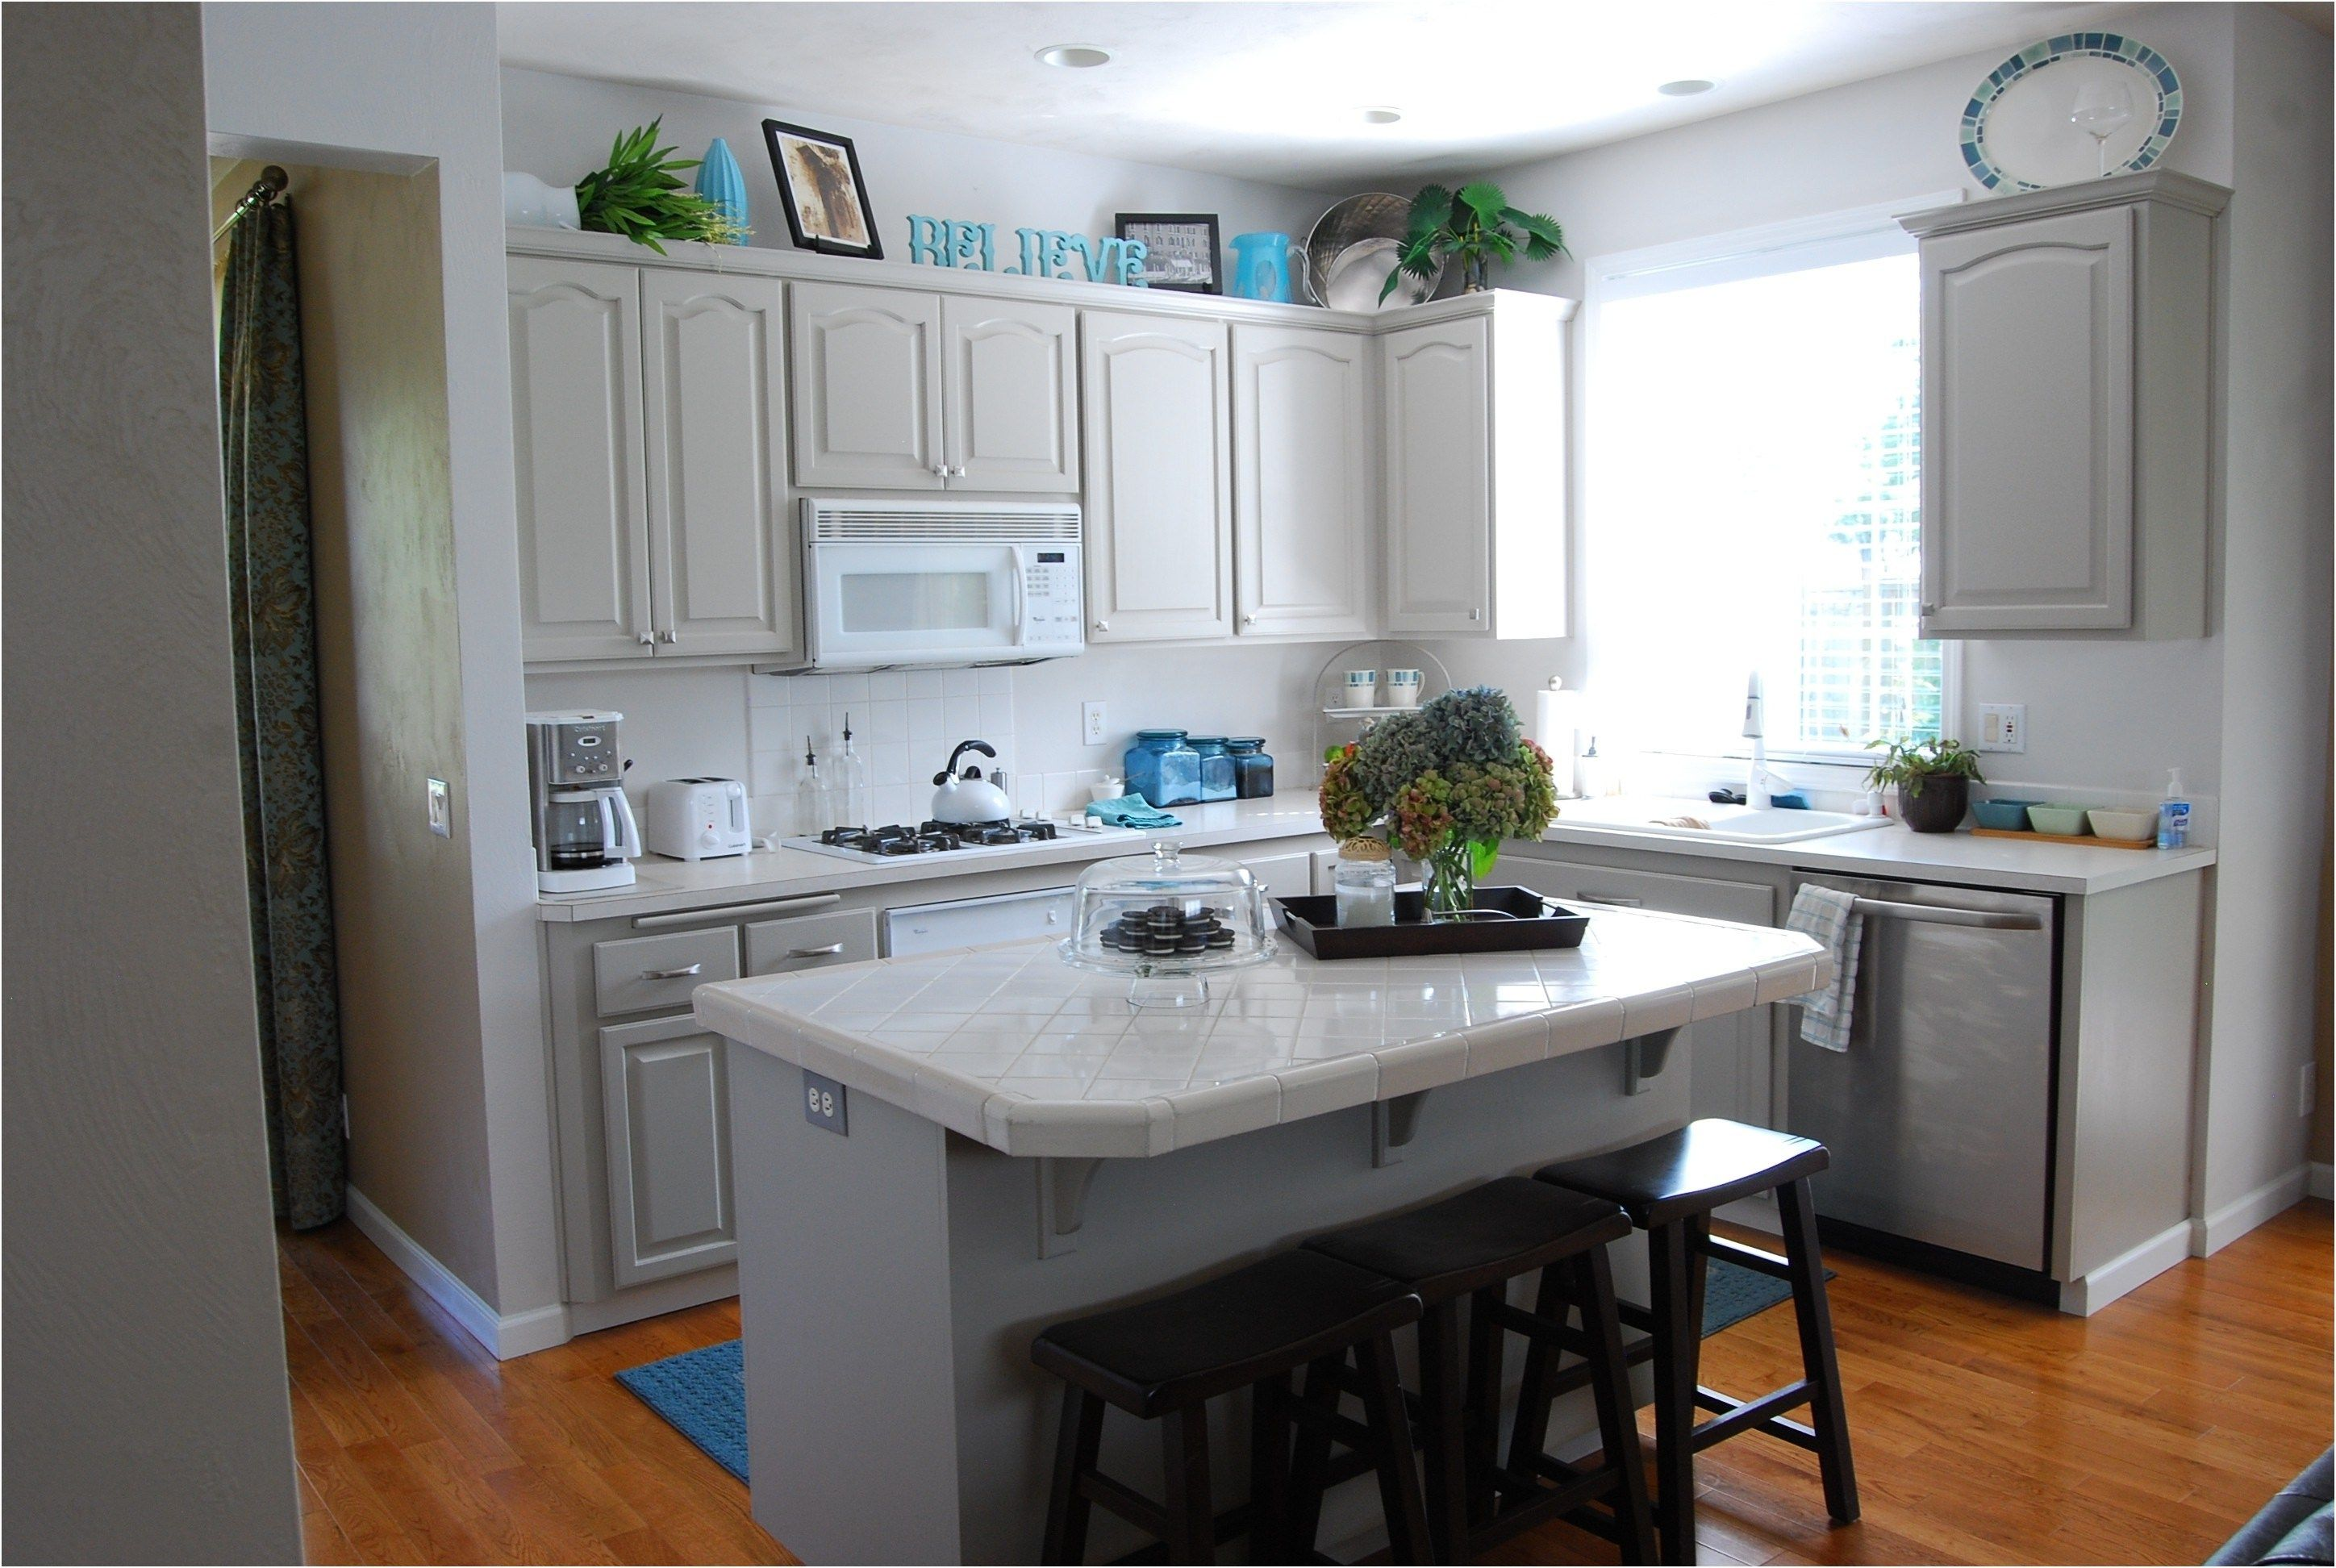 kitchen cabinet color ideas with white appliances finest modern from what color kitchen cabinets on kitchen cabinet color ideas id=49466